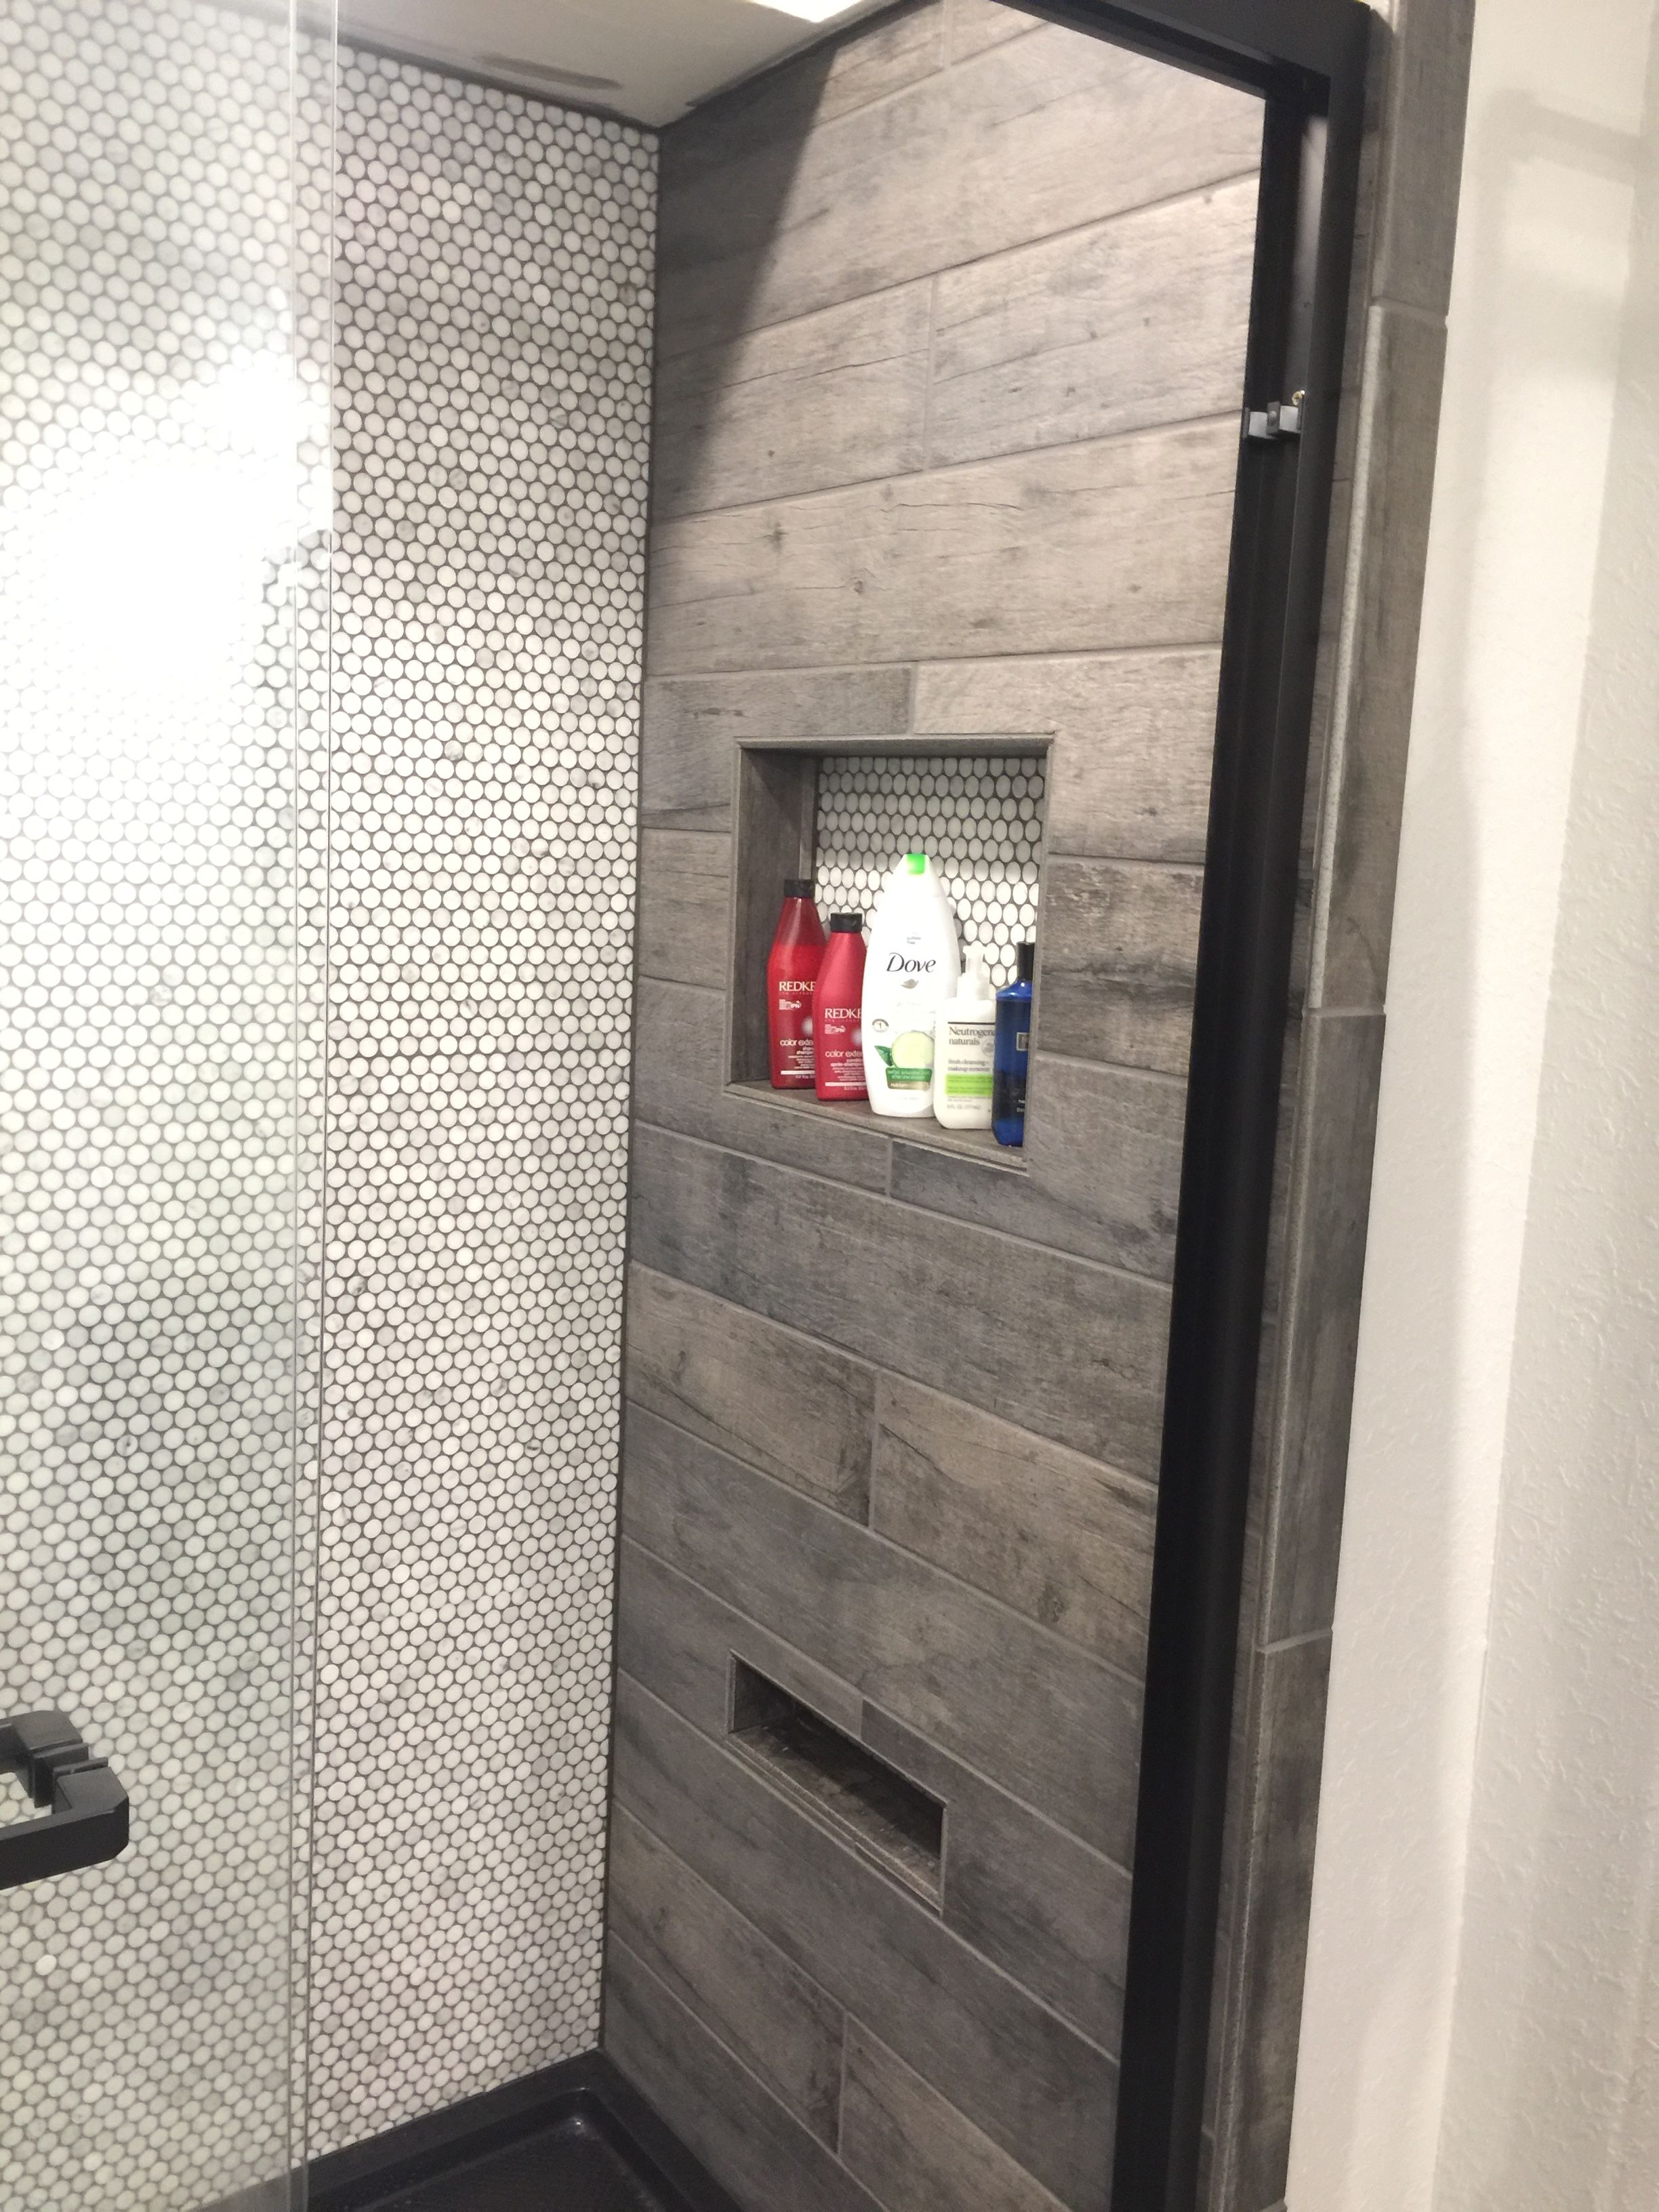 Ceramic Wood Tile Shower Walls With Foot Rest Niche For Shaving